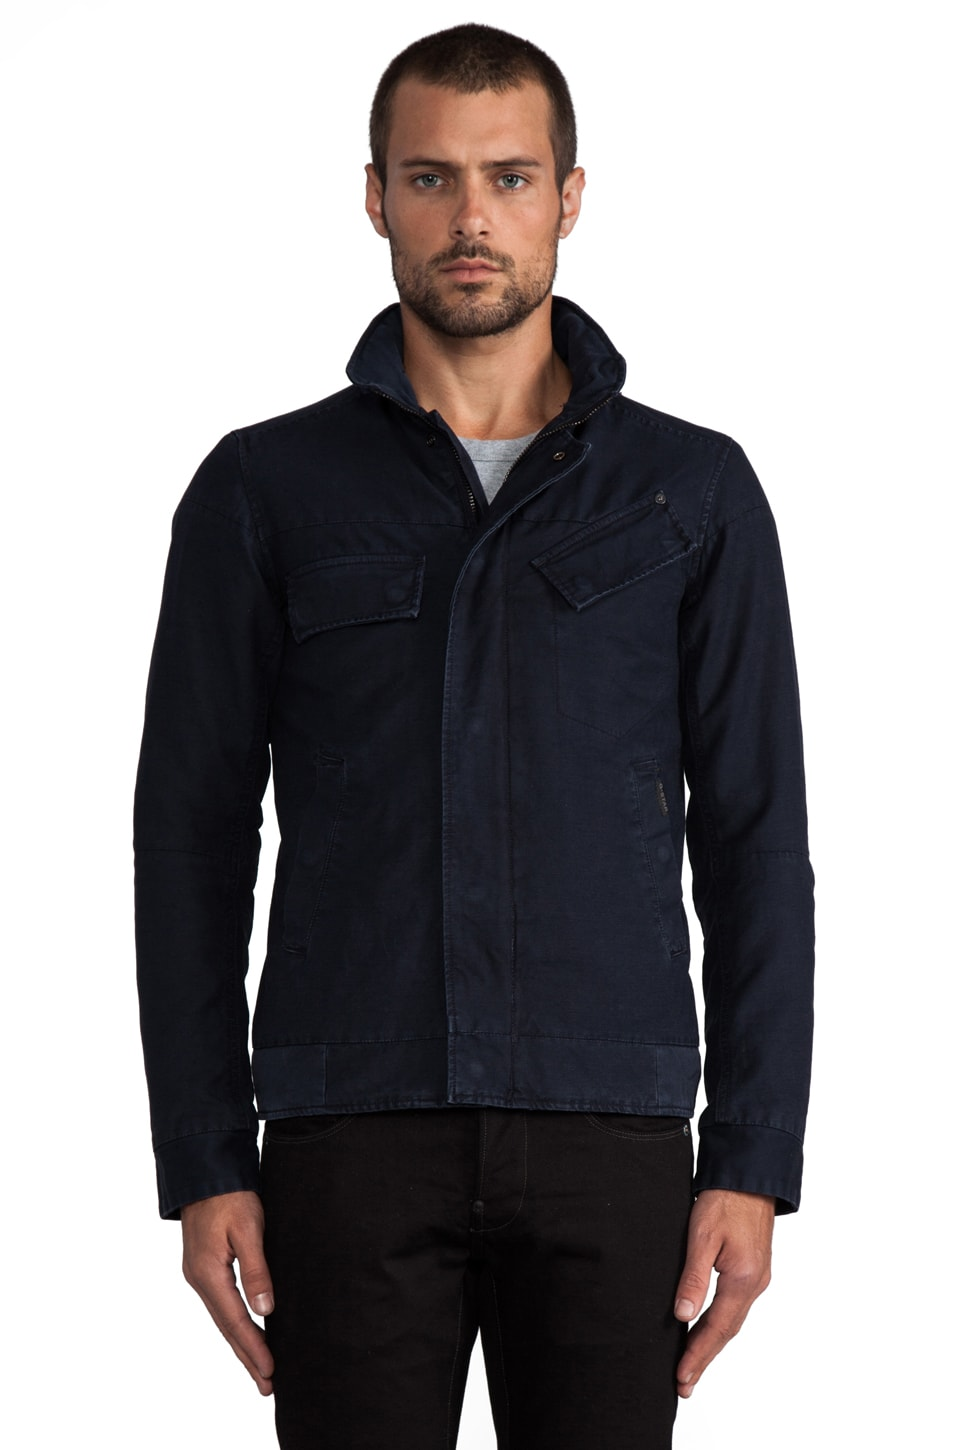 G-Star Raw Radar Jacket in Mazarine Blue